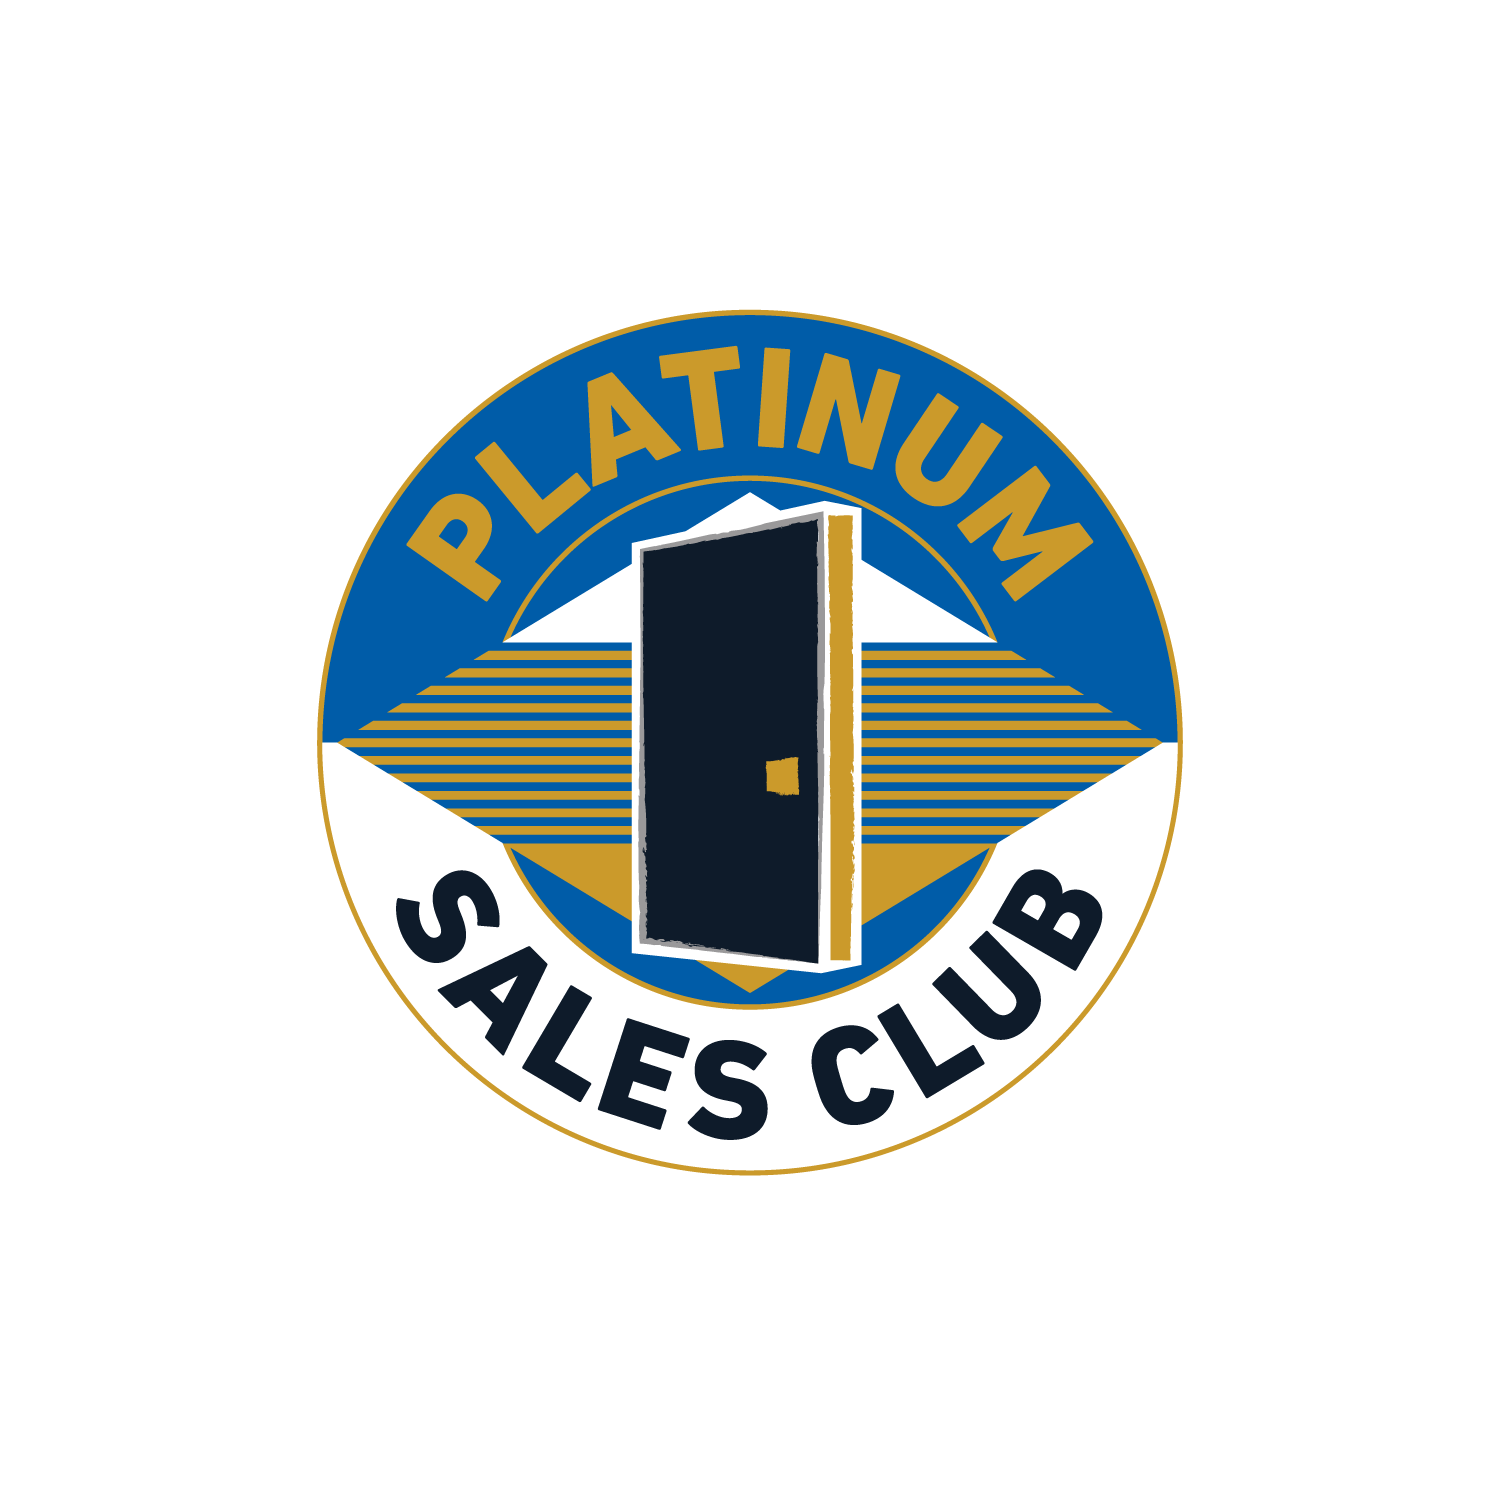 Platinum Sales Club